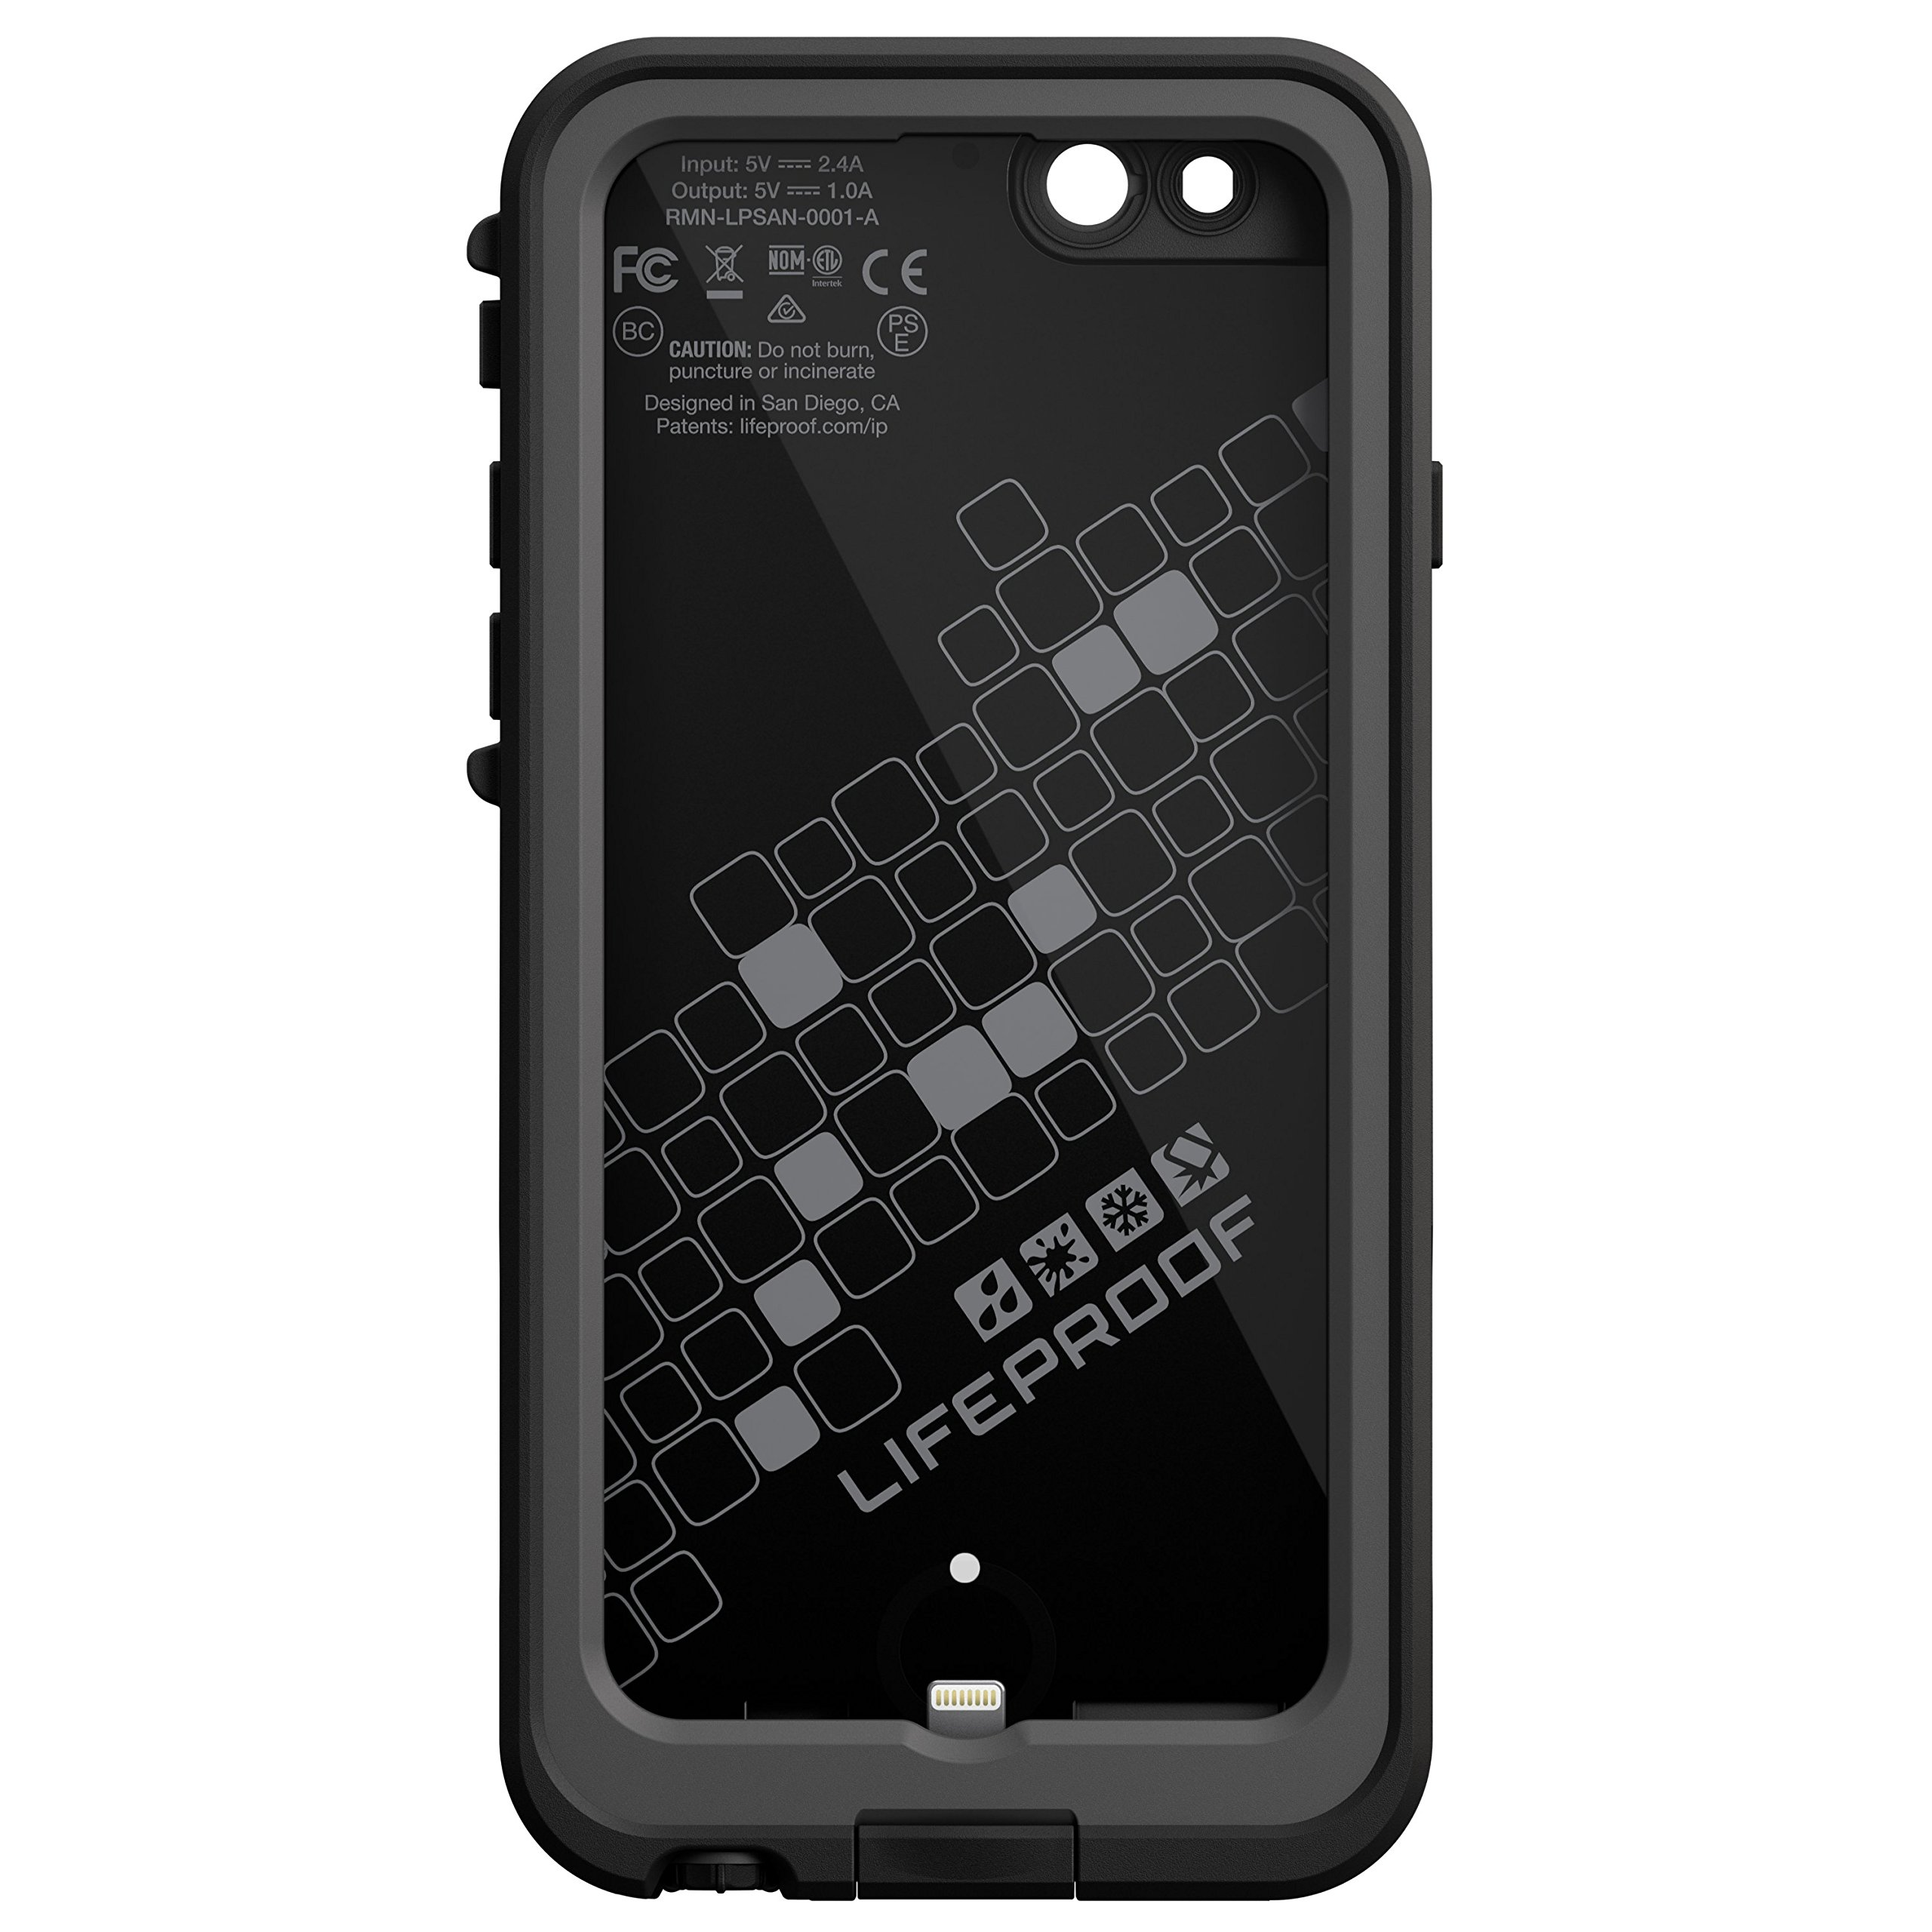 lifeproof battery case iphone 6 instructions